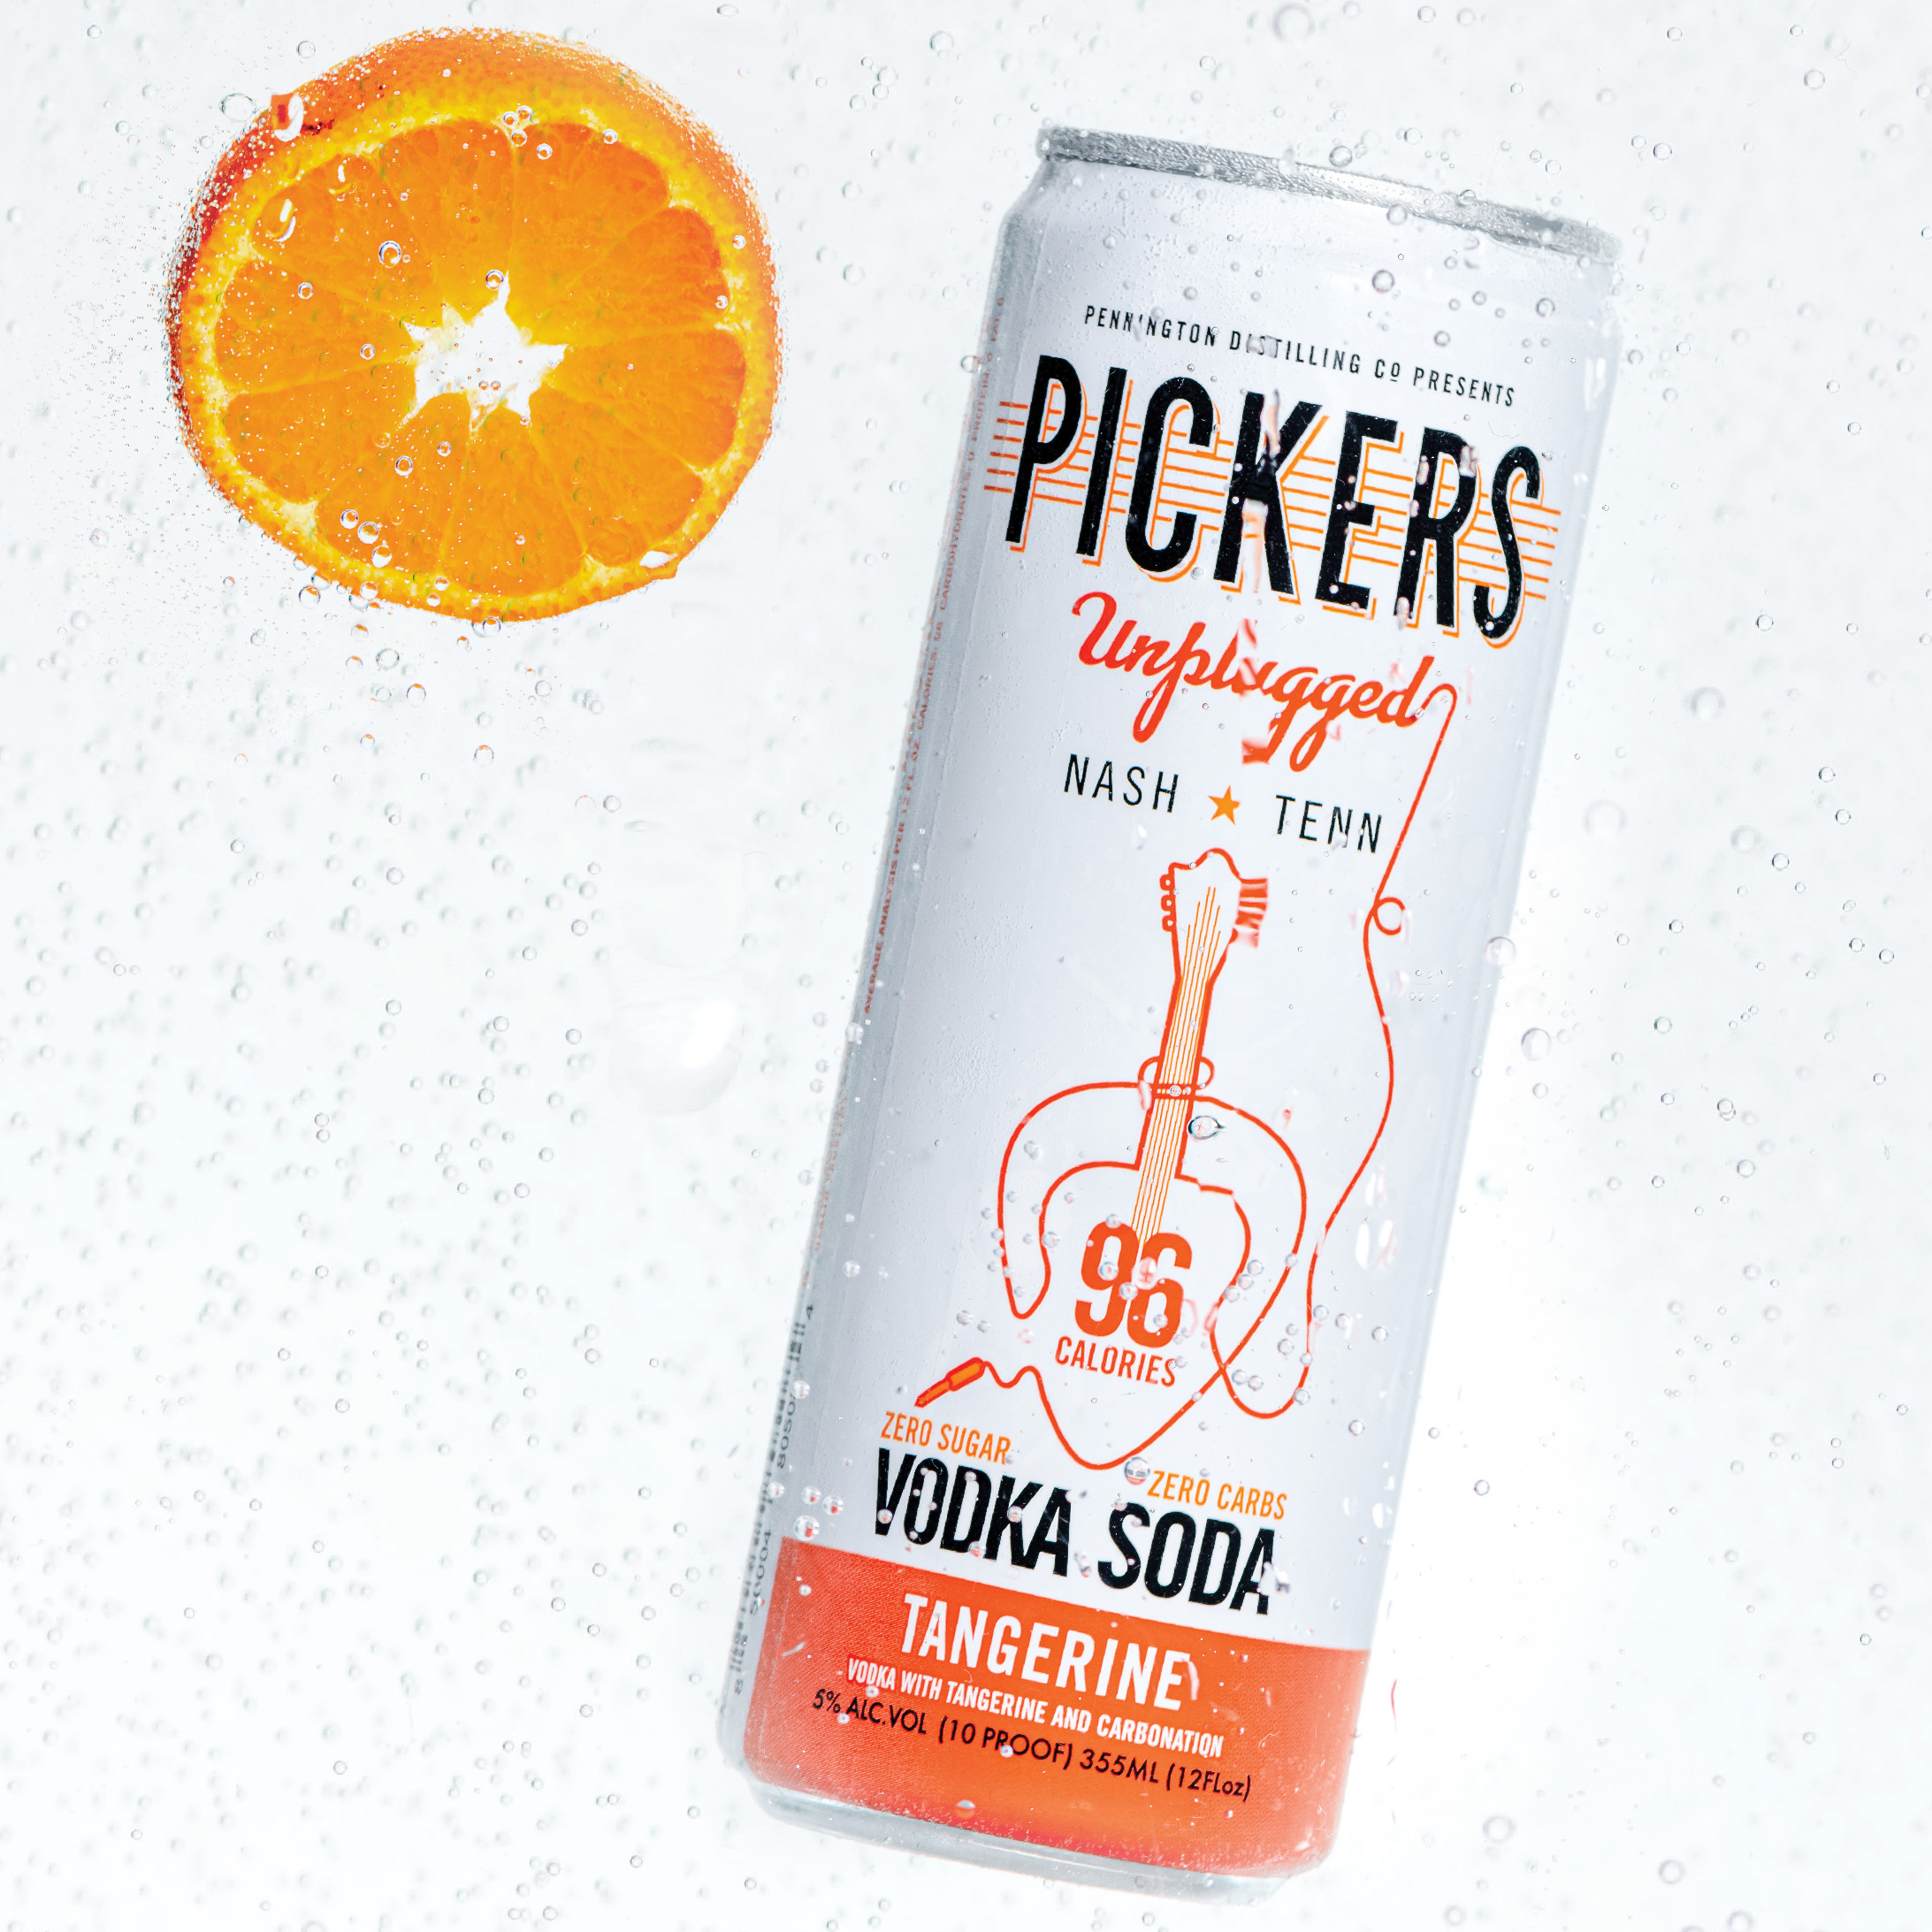 Pickers Unplugged Vodka Soda Singles-04.jpg